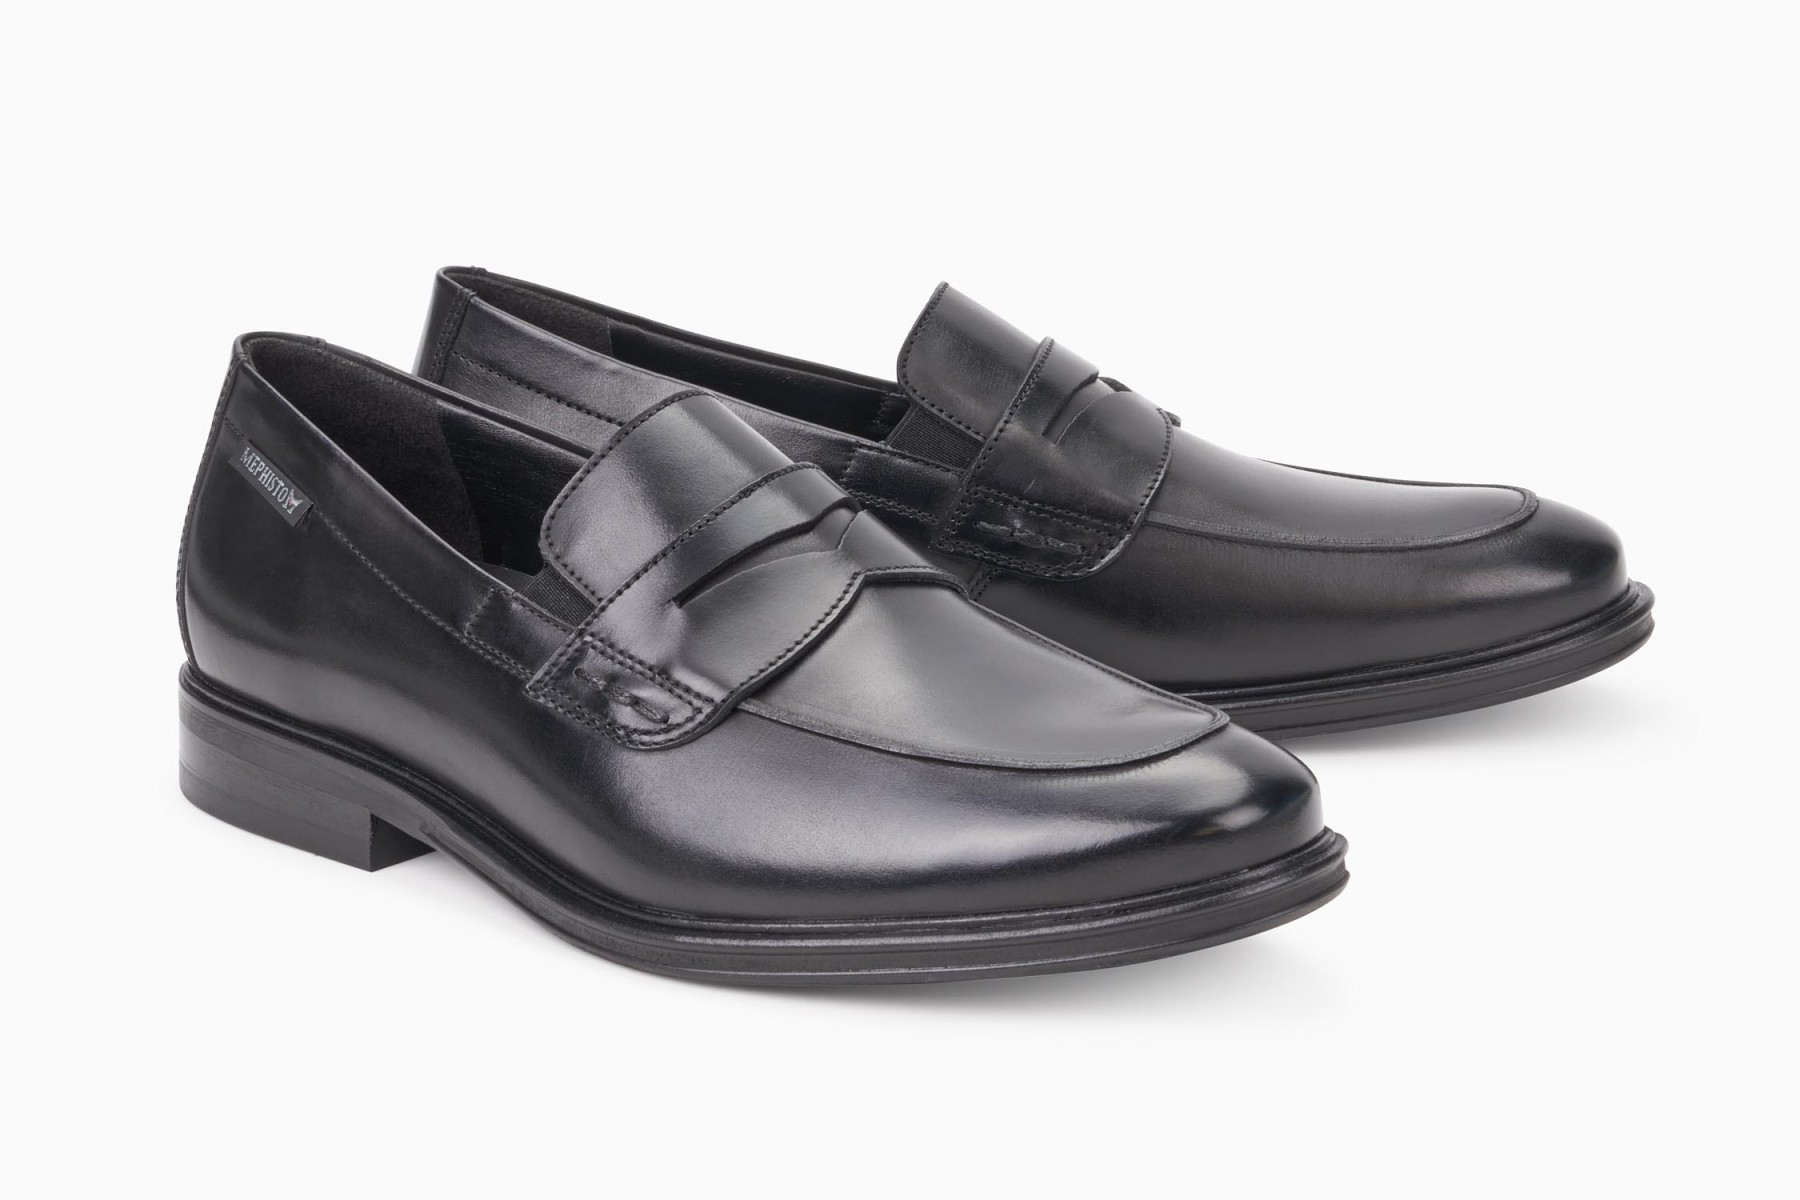 a759e2dc5a NILSON Slip-on - MEPHISTO Men's Loafers and Slip-ons   Smooth ...